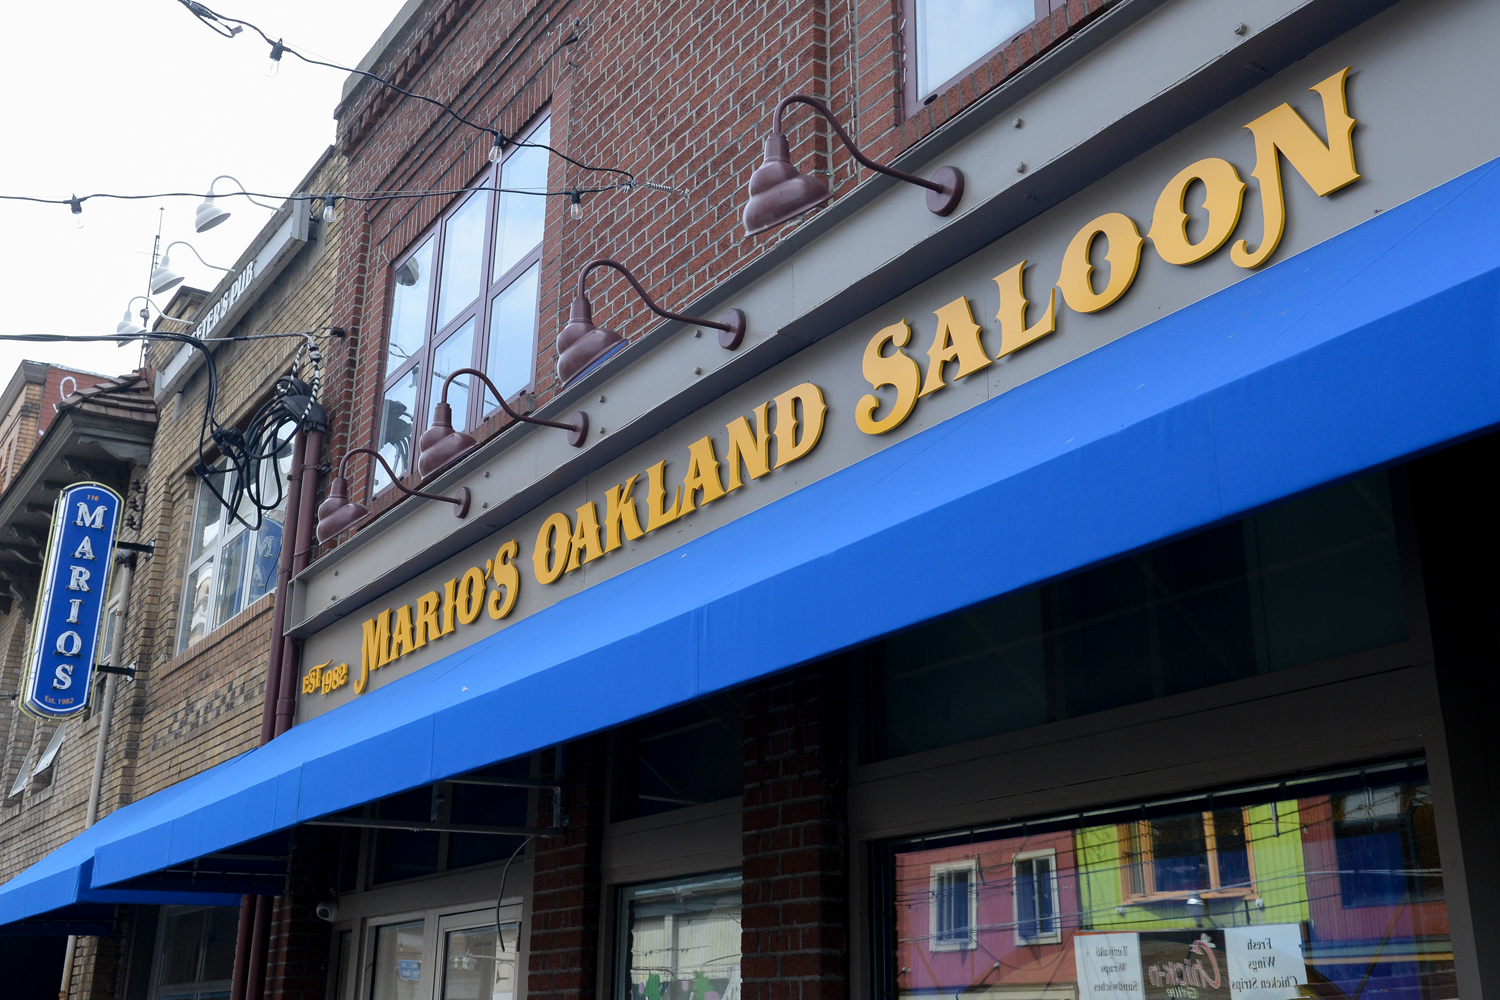 Exterior of the unopened Mario's Saloon's Oakland location on Oakland Avenue.